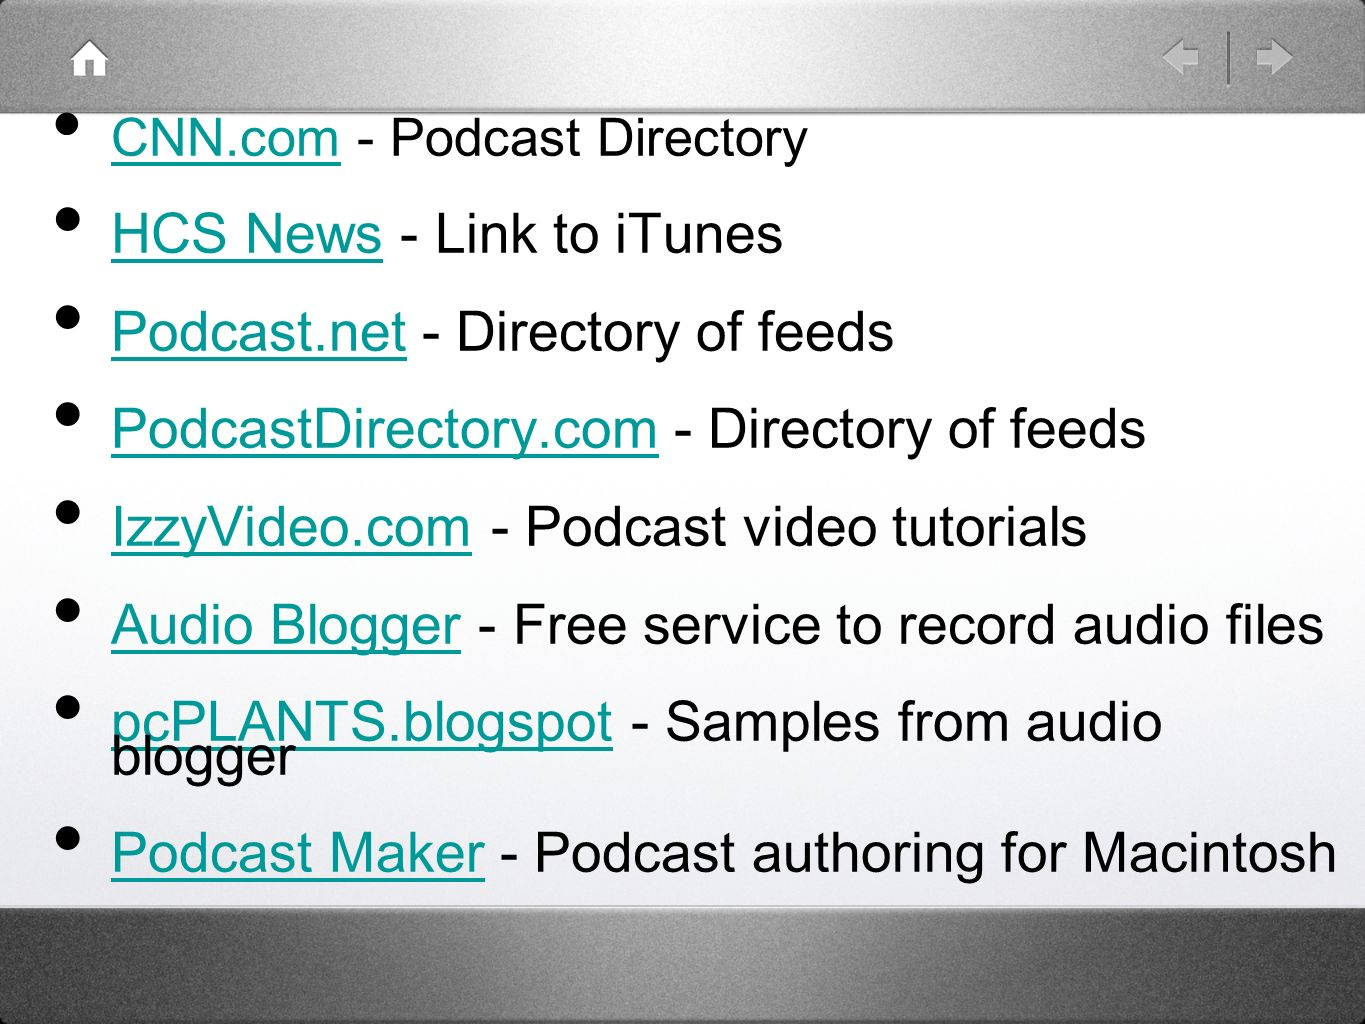 CNN.com - Podcast Directory CNN.com HCS News - Link to iTunes HCS News Podcast.net - Directory of feeds Podcast.net PodcastDirectory.com - Directory of feeds PodcastDirectory.com IzzyVideo.com - Podcast video tutorials IzzyVideo.com Audio Blogger - Free service to record audio files Audio Blogger pcPLANTS.blogspot - Samples from audio blogger pcPLANTS.blogspot Podcast Maker - Podcast authoring for Macintosh Podcast Maker